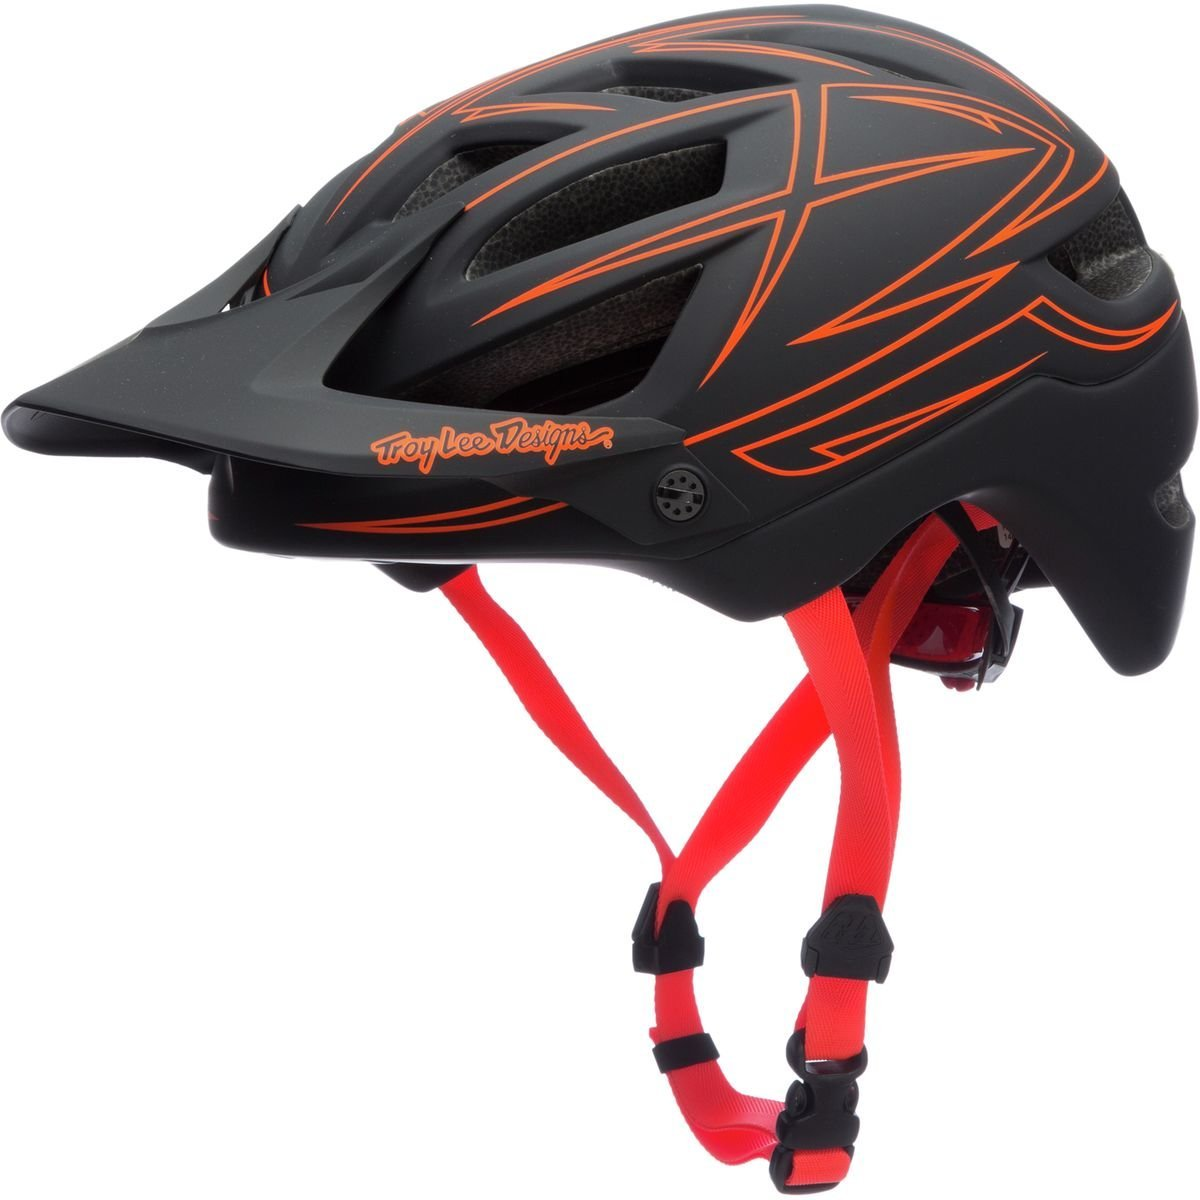 Large Troy Lee Designs Bicycle Helmets